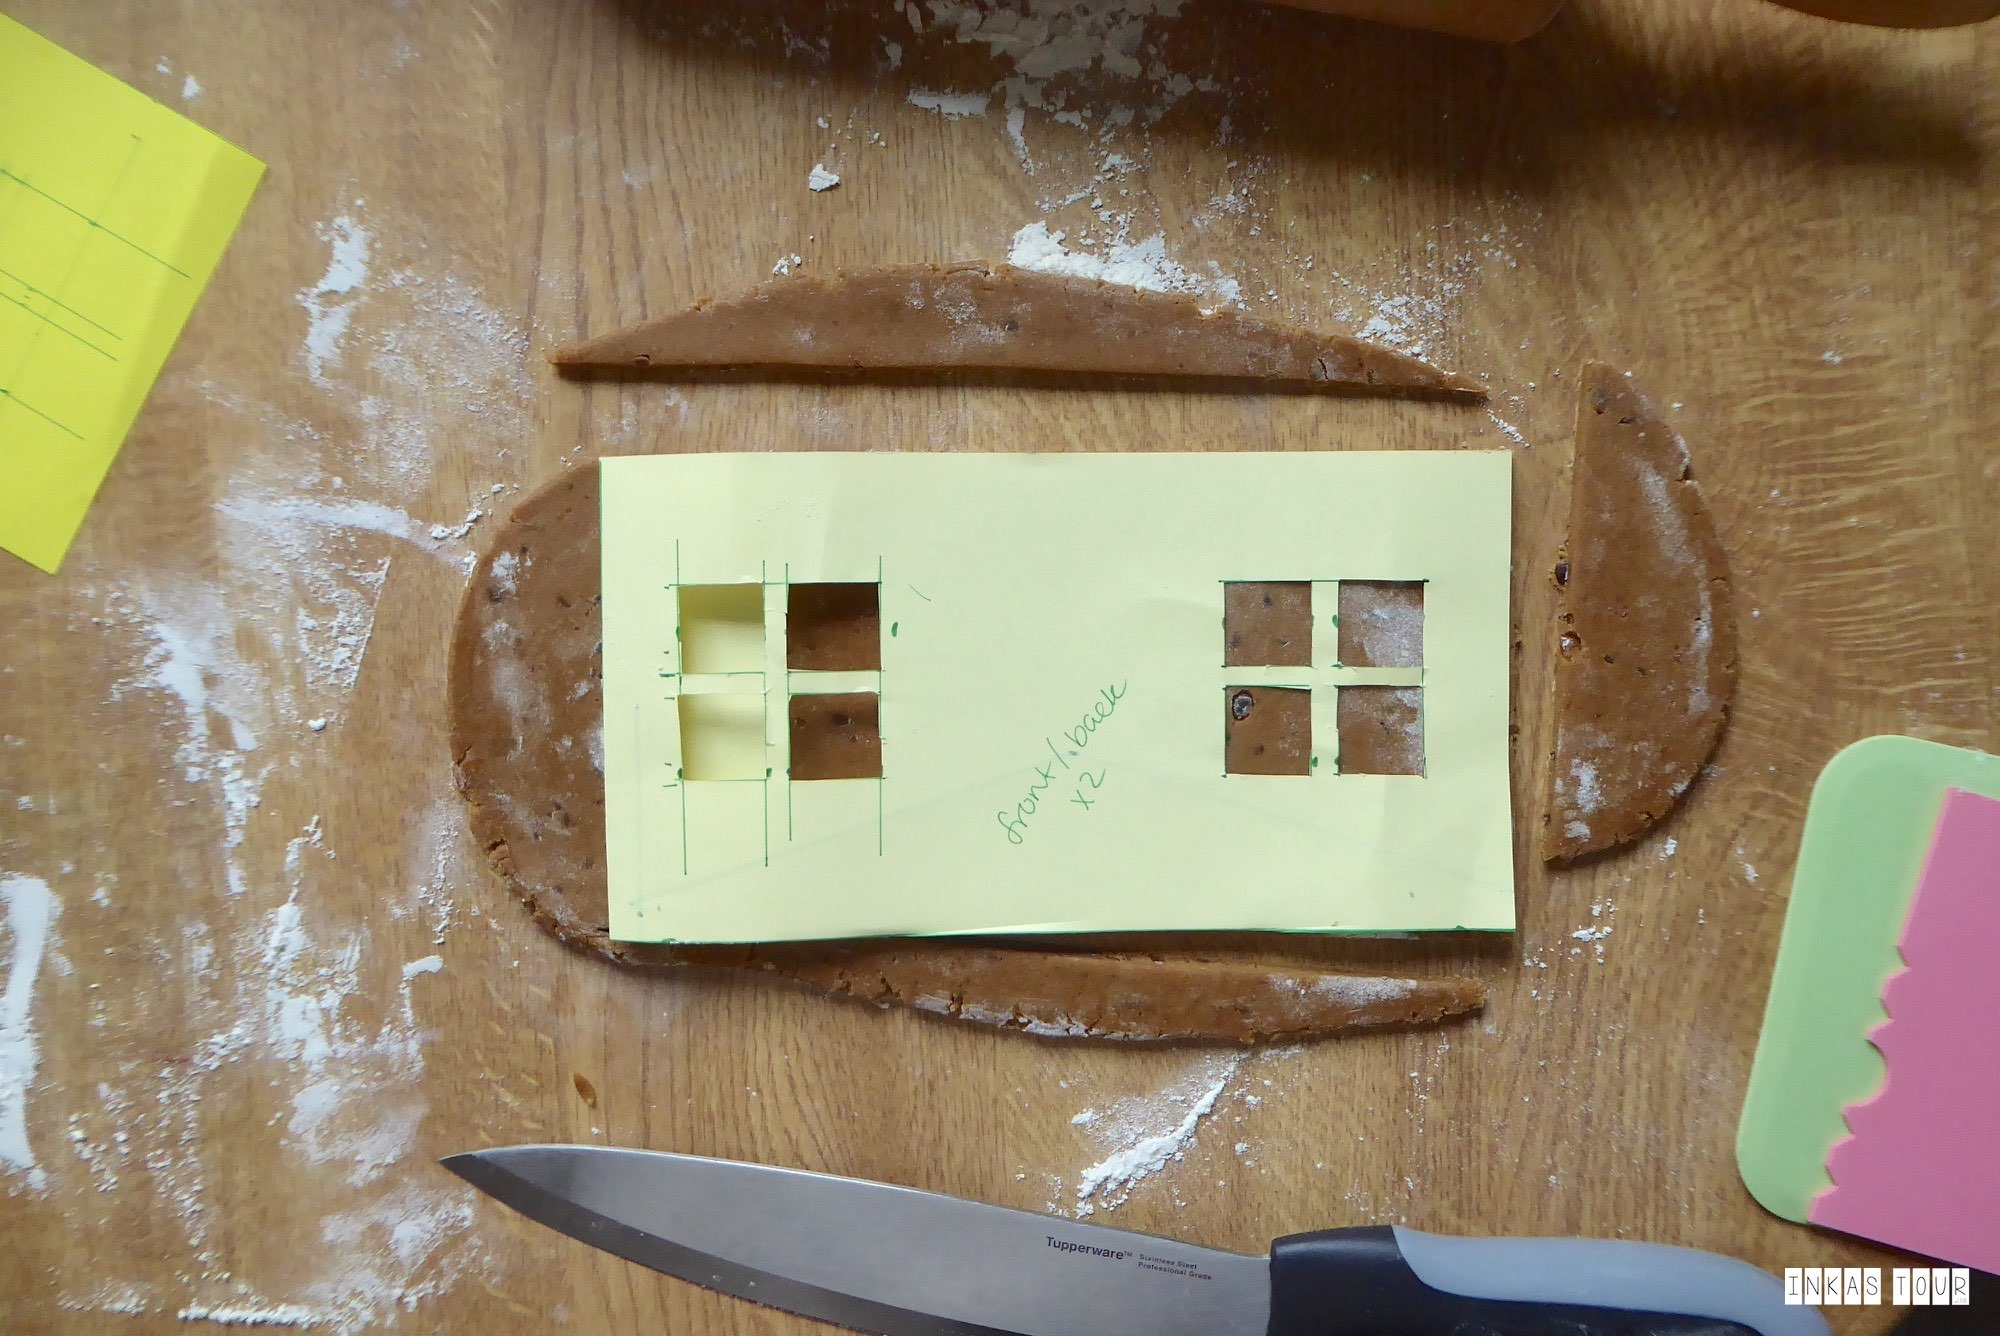 Gingerbread-House-Lebkuchen-Haus-Decorate-and-Bake-Recipe-Rezept-Christmas-Advents-Calender-Customs-and-Traditions-Inkas-Tour-Travelblog-Baking-Blog-Food-around-the-World